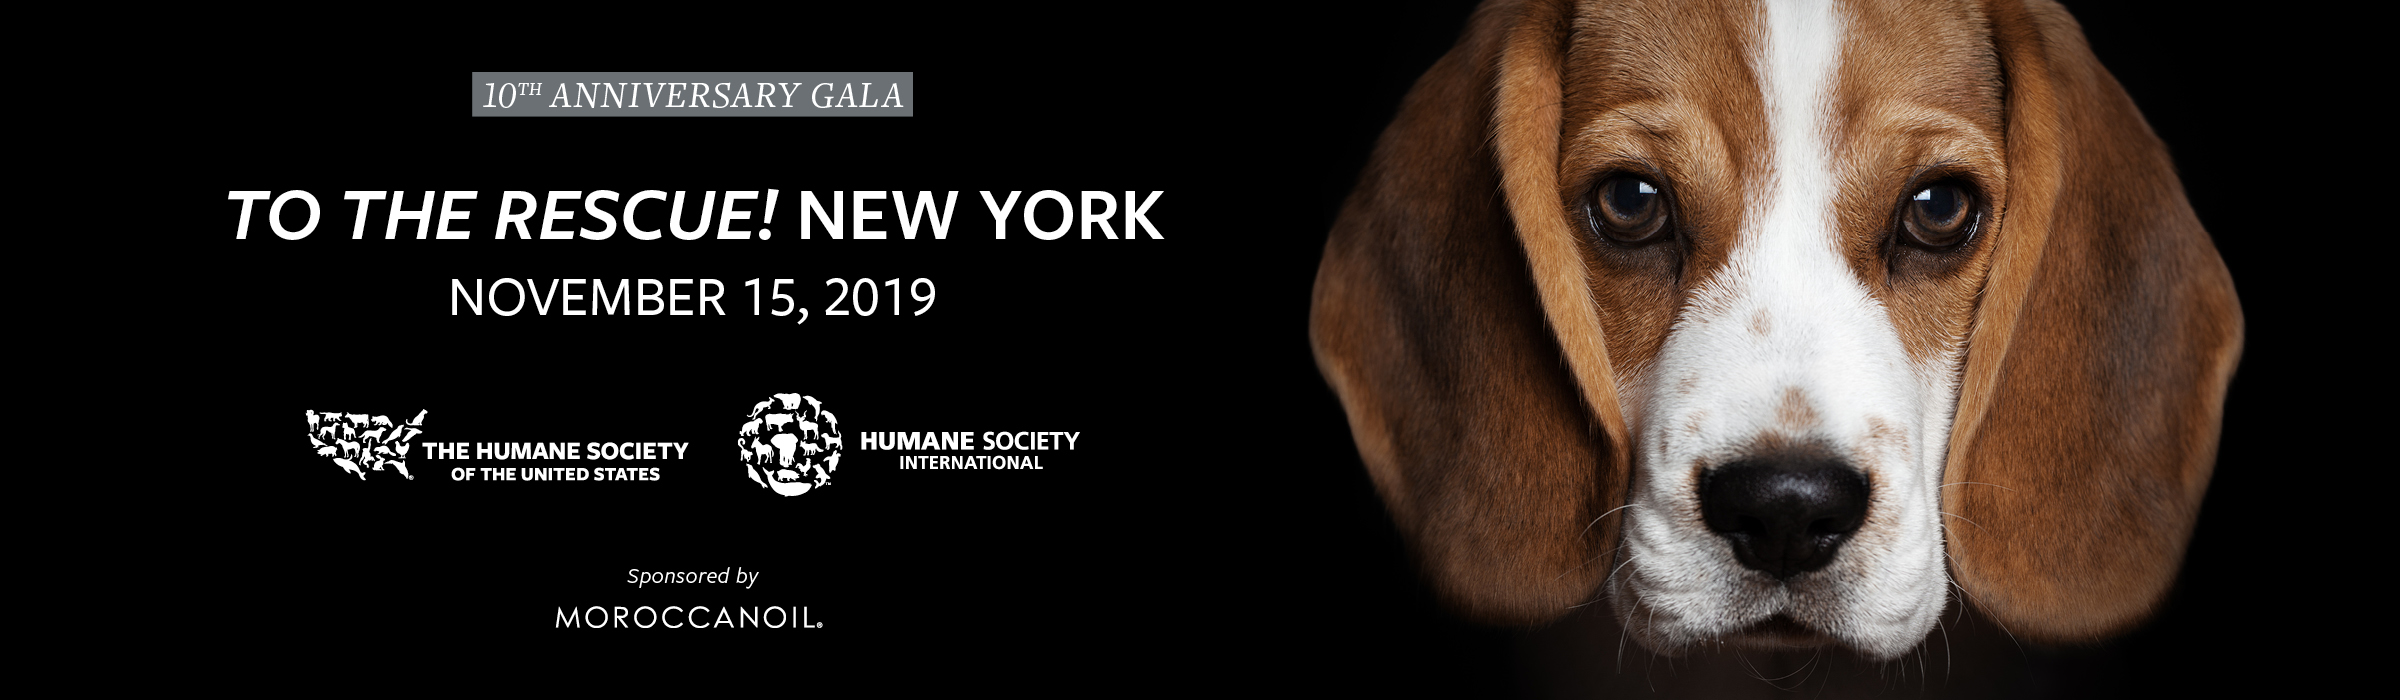 "Jerry O'Connell and Rebecca Romijn to host the Humane Society of the United States ""To the Rescue!"" New York 10th Anniversary Gala"